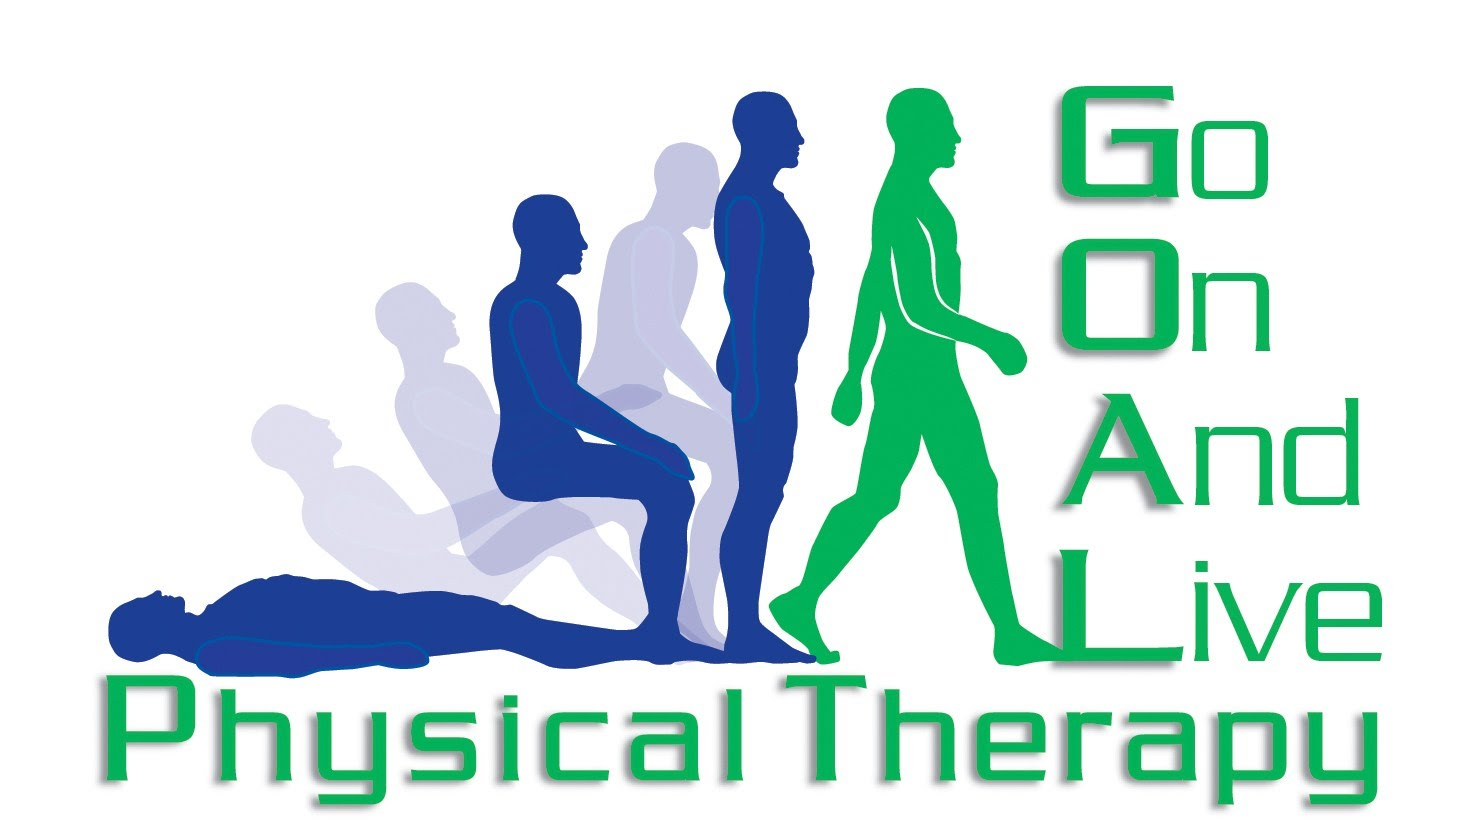 Workout clipart physical therapy. Training youtube